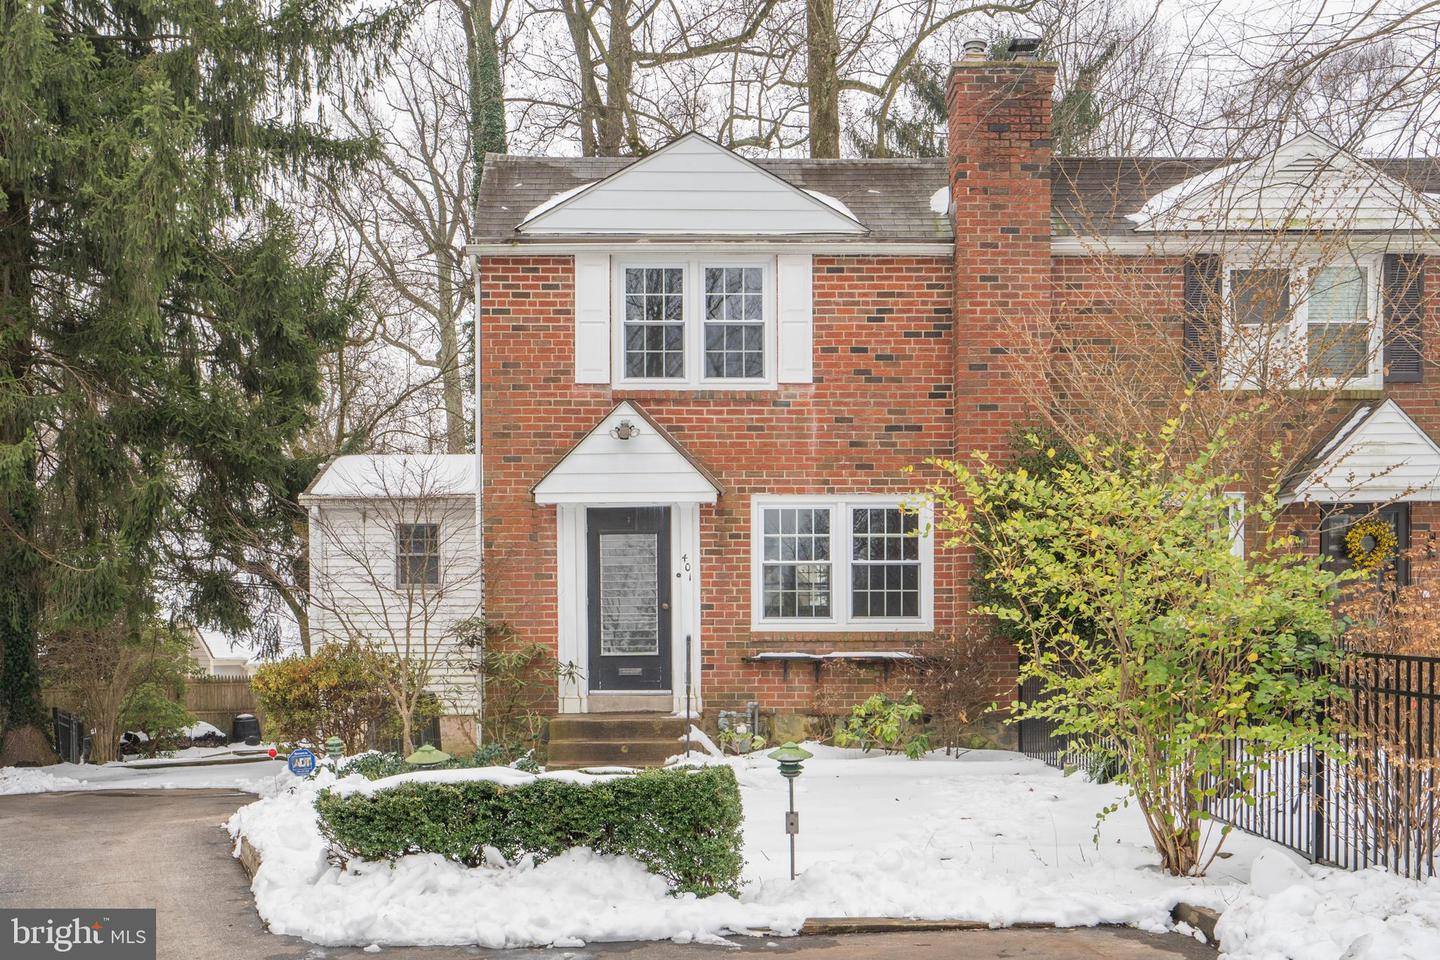 401 Country Lane Narberth, PA 19072